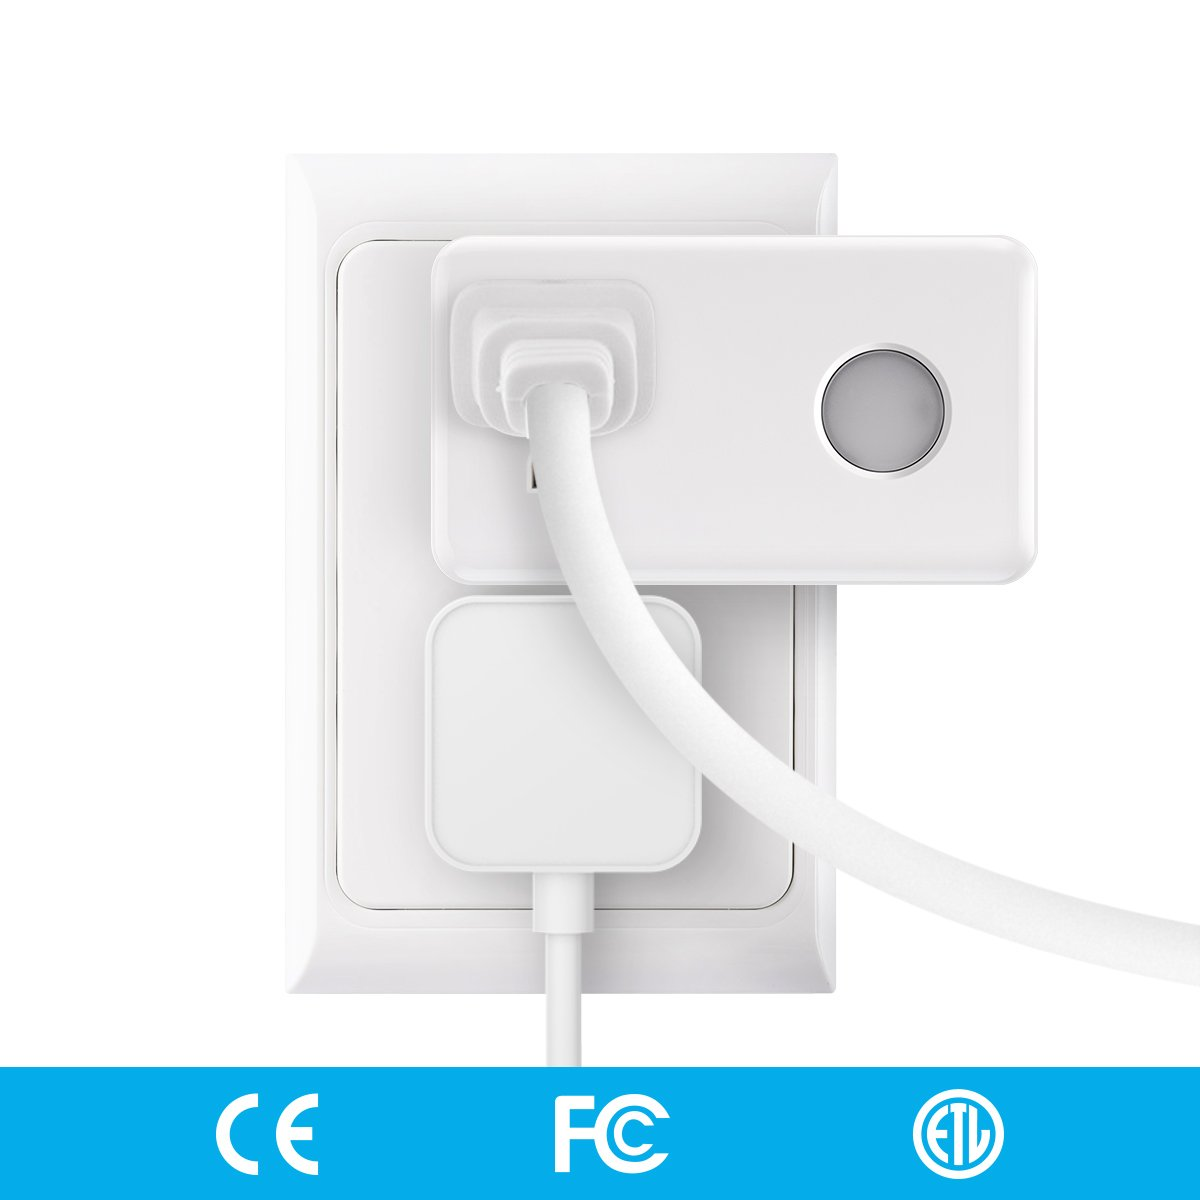 Smart Plug with Night Light, BroadLink Wi-Fi Mini Outlet, No Hub Required, Remote Control Your Devices from Anywhere, White (SP3-US), Works with Alexa